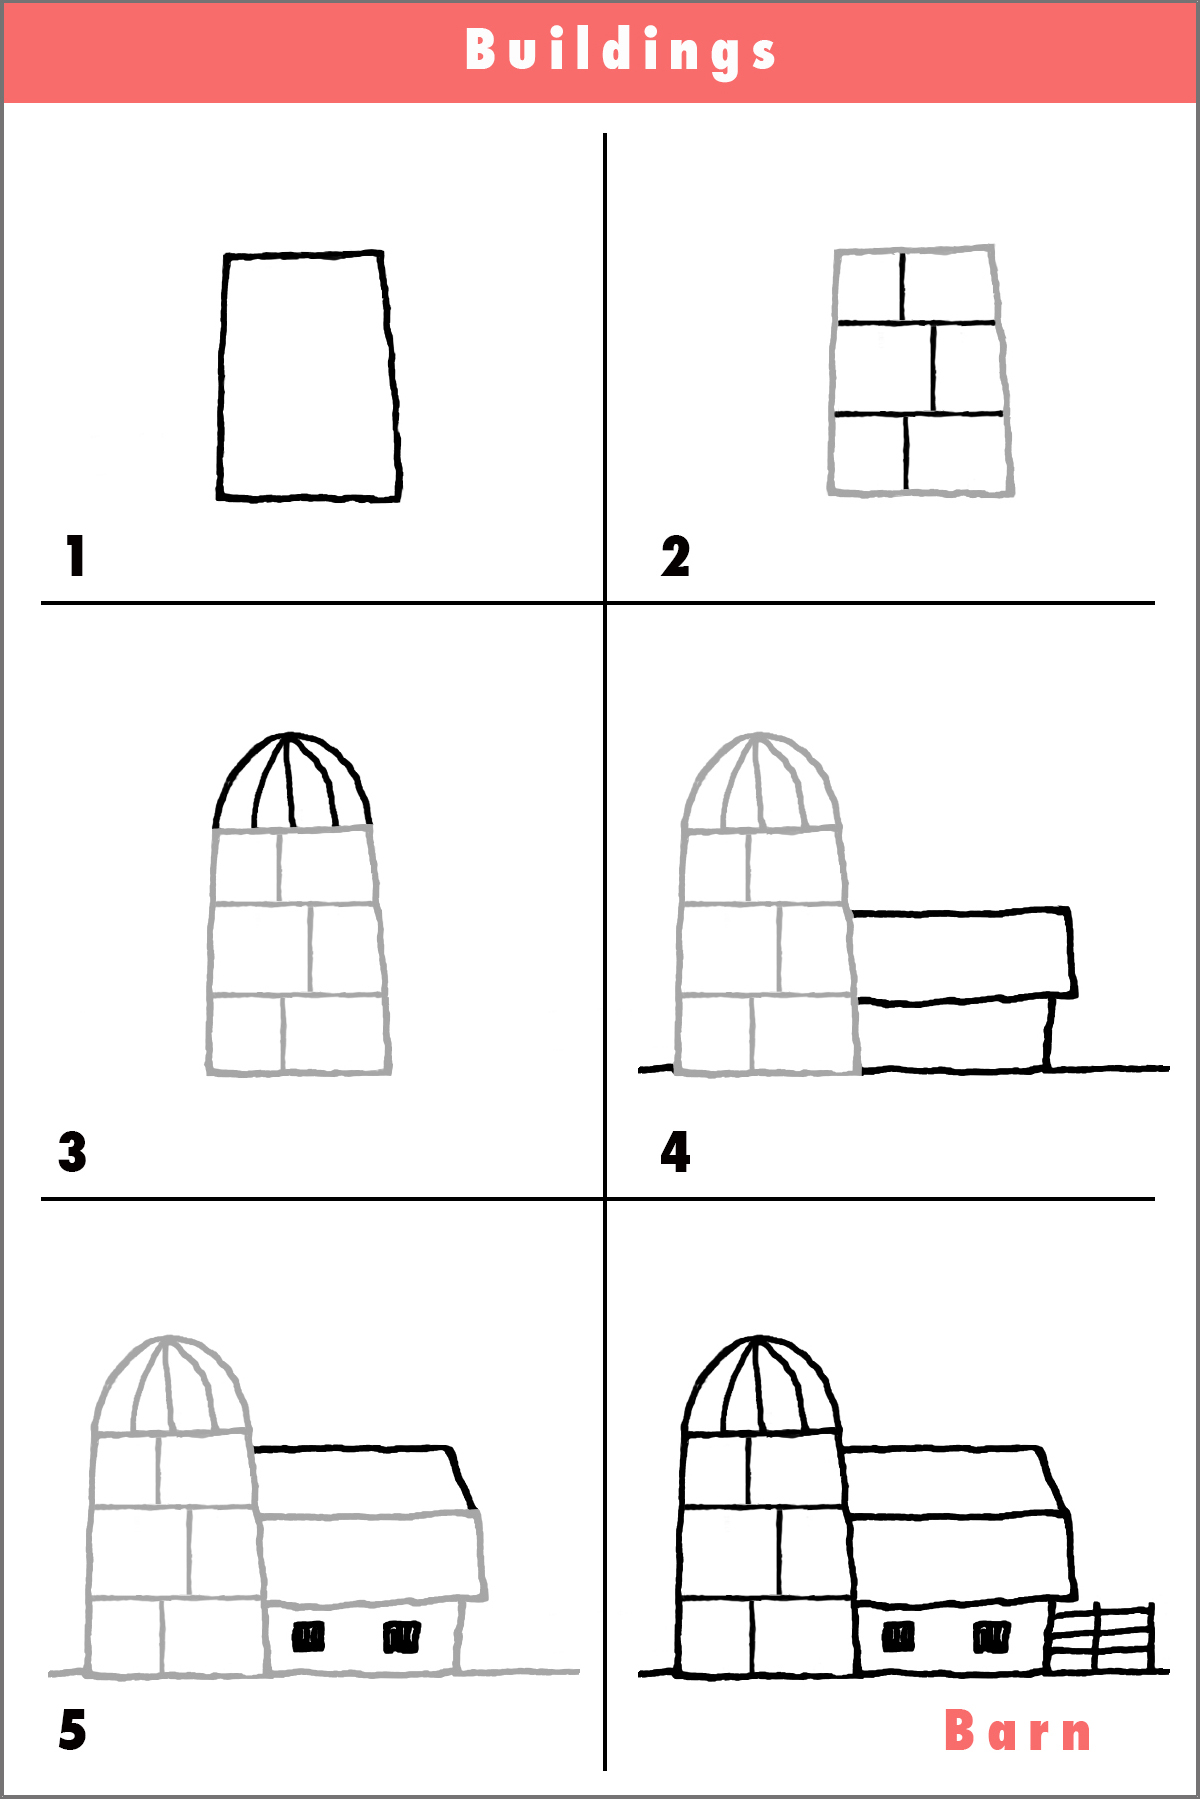 Cartoon barn draw simple whimsical sketch pencil fun Step by step to build a house